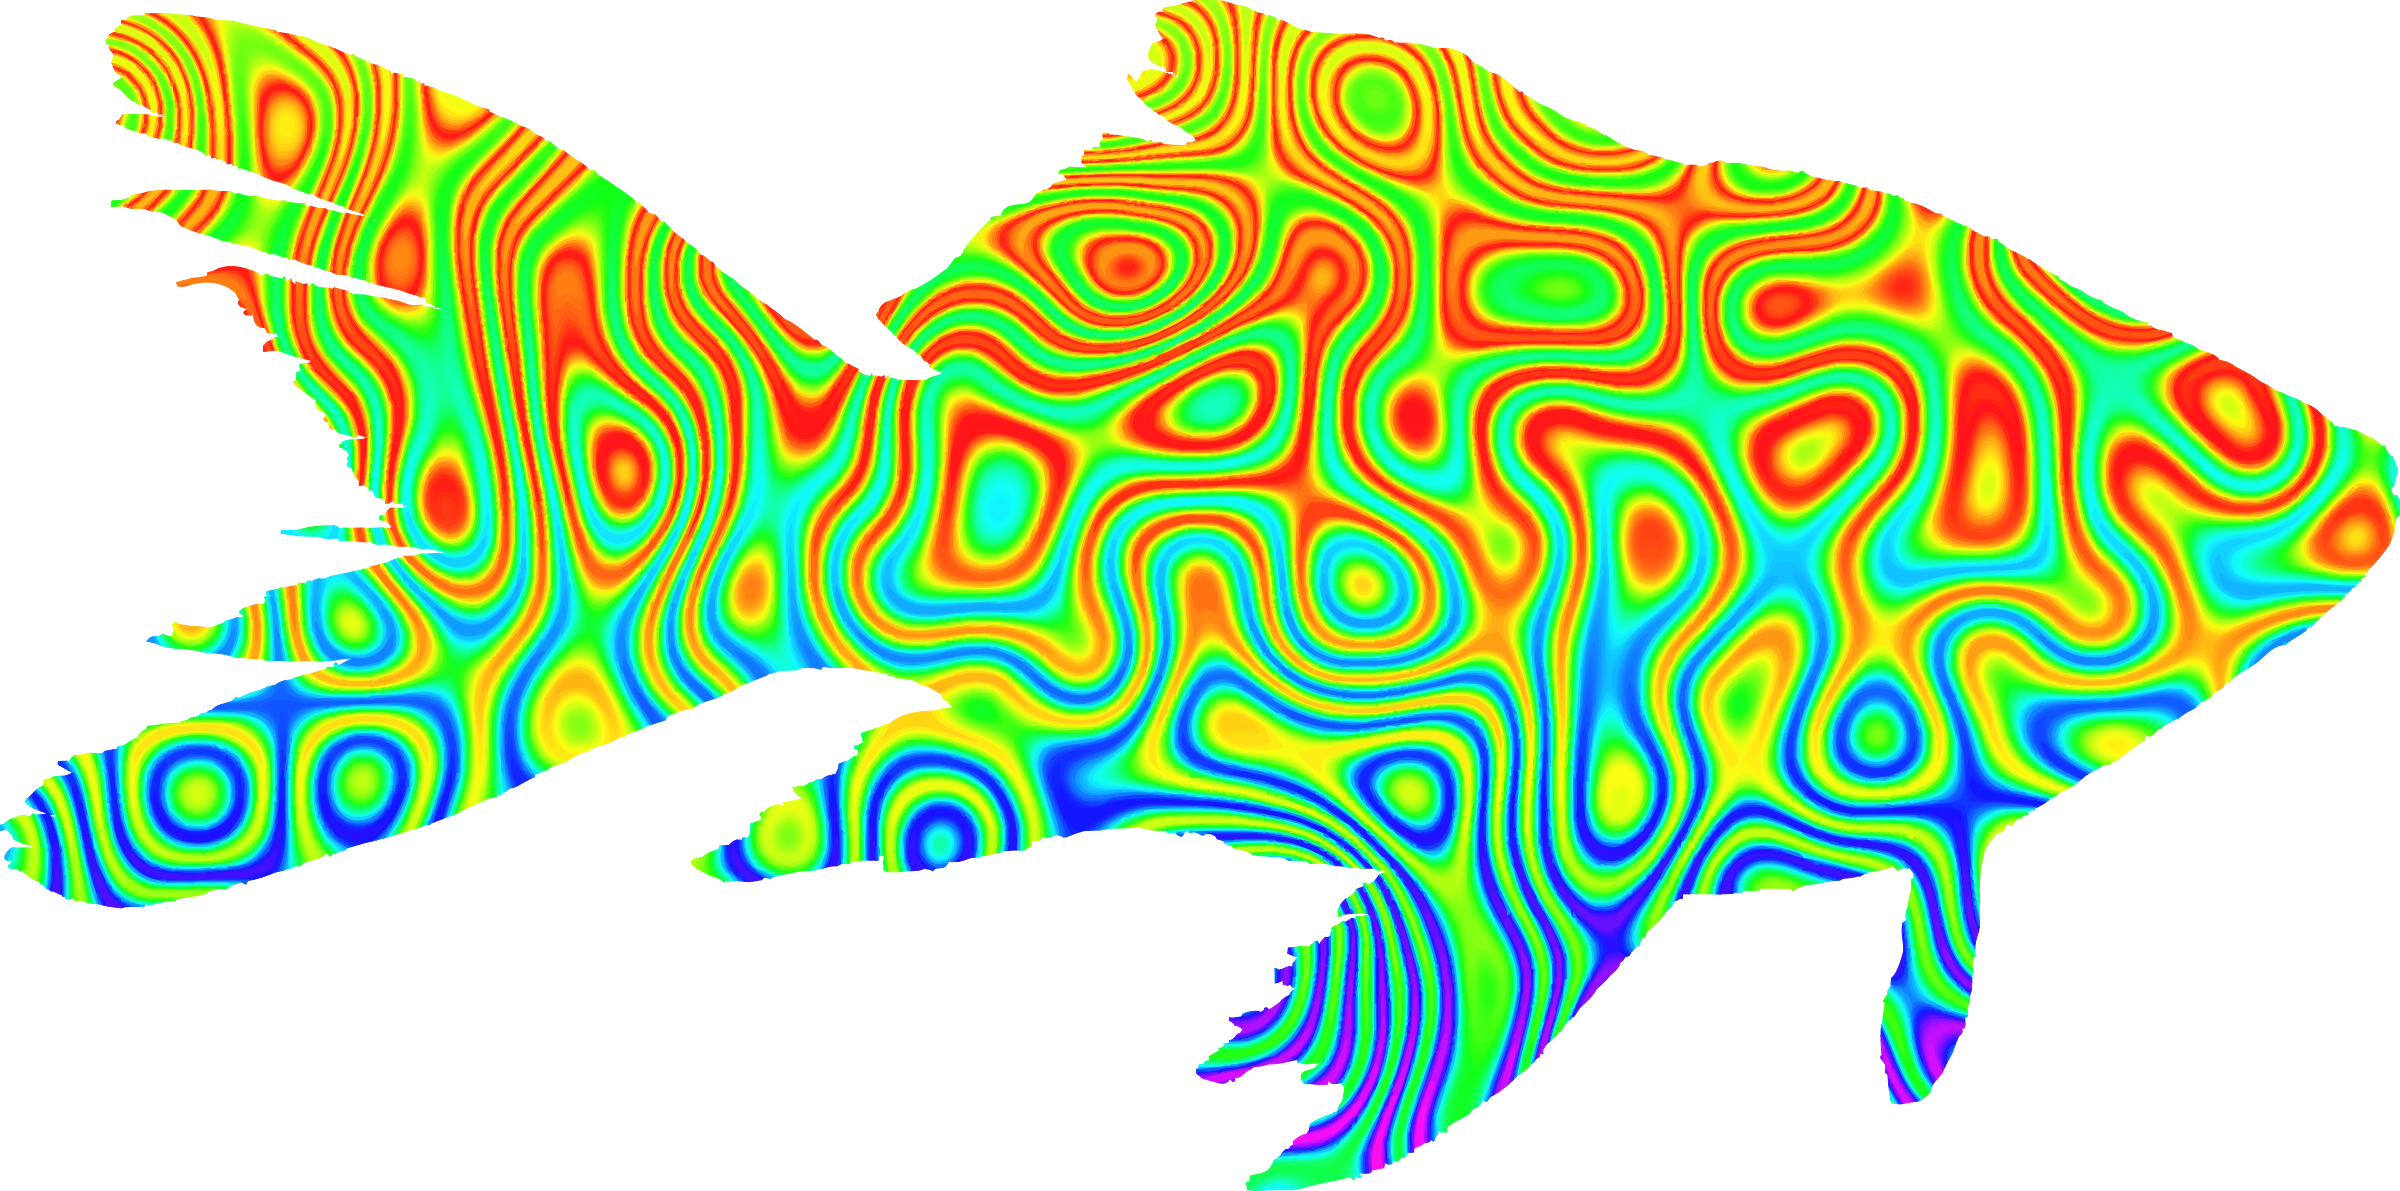 Psychedelic goldfish by Firkin